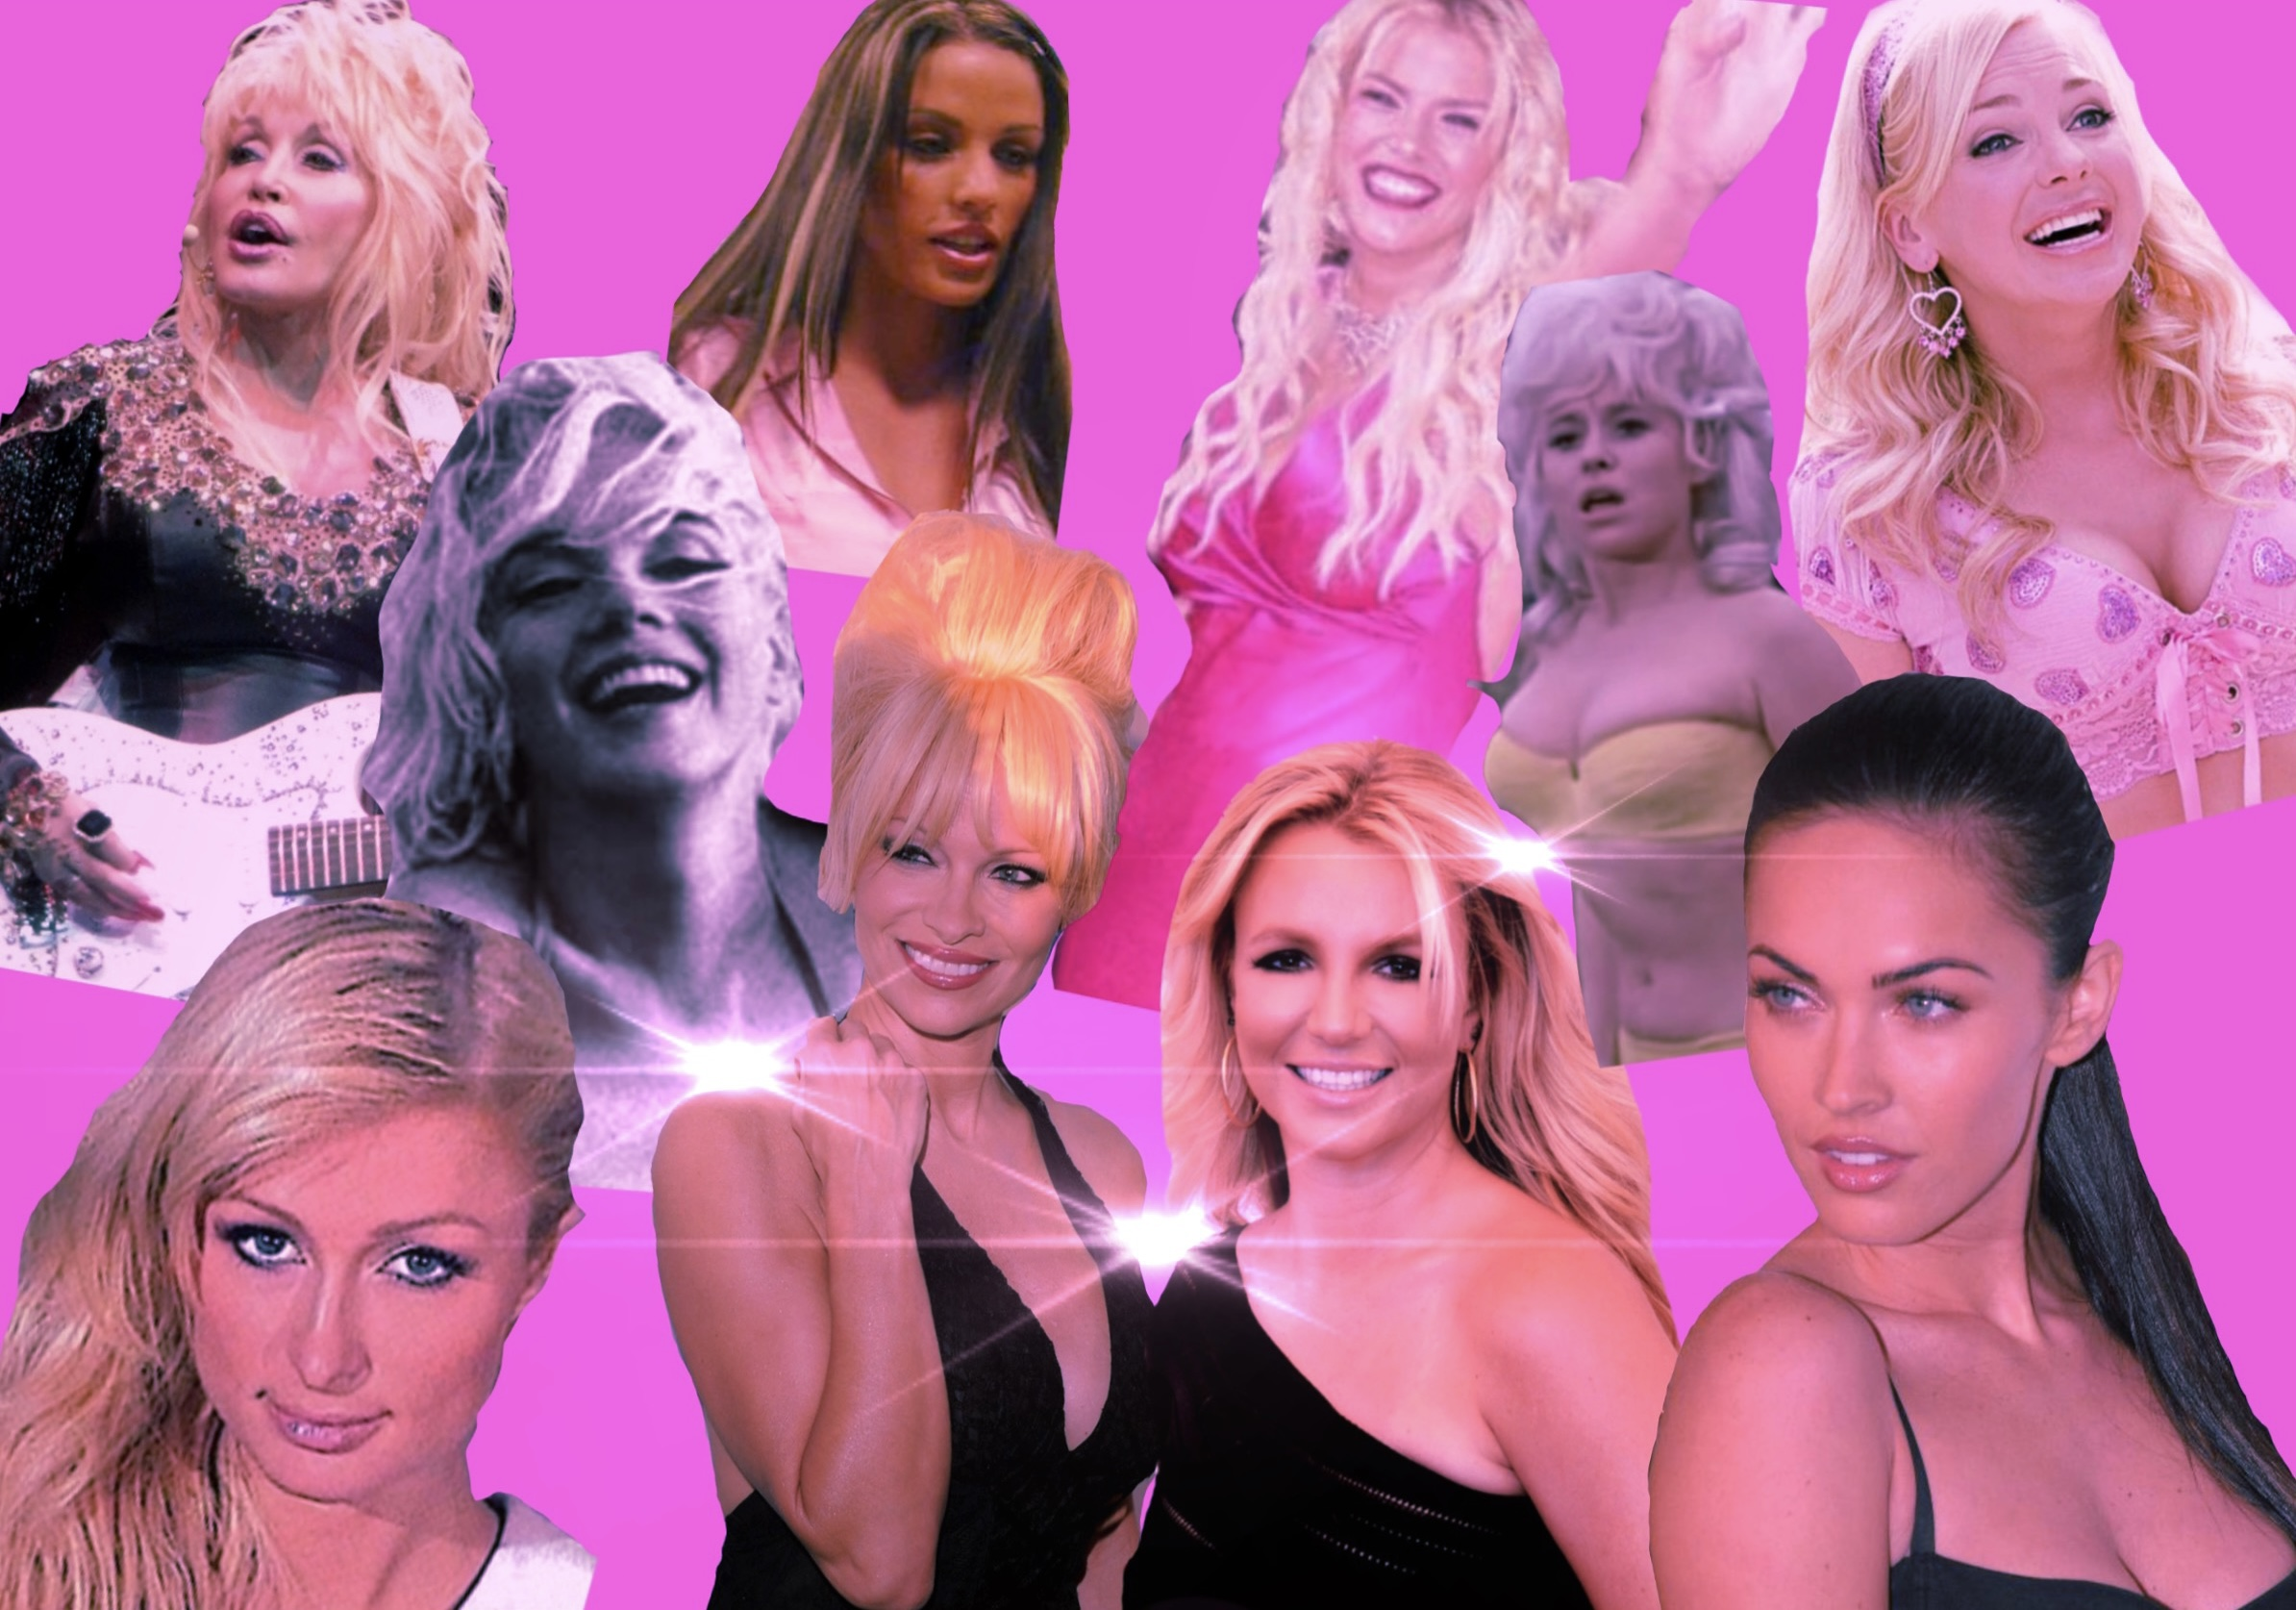 Photo collage of celebrities which has been referred to as bimbos